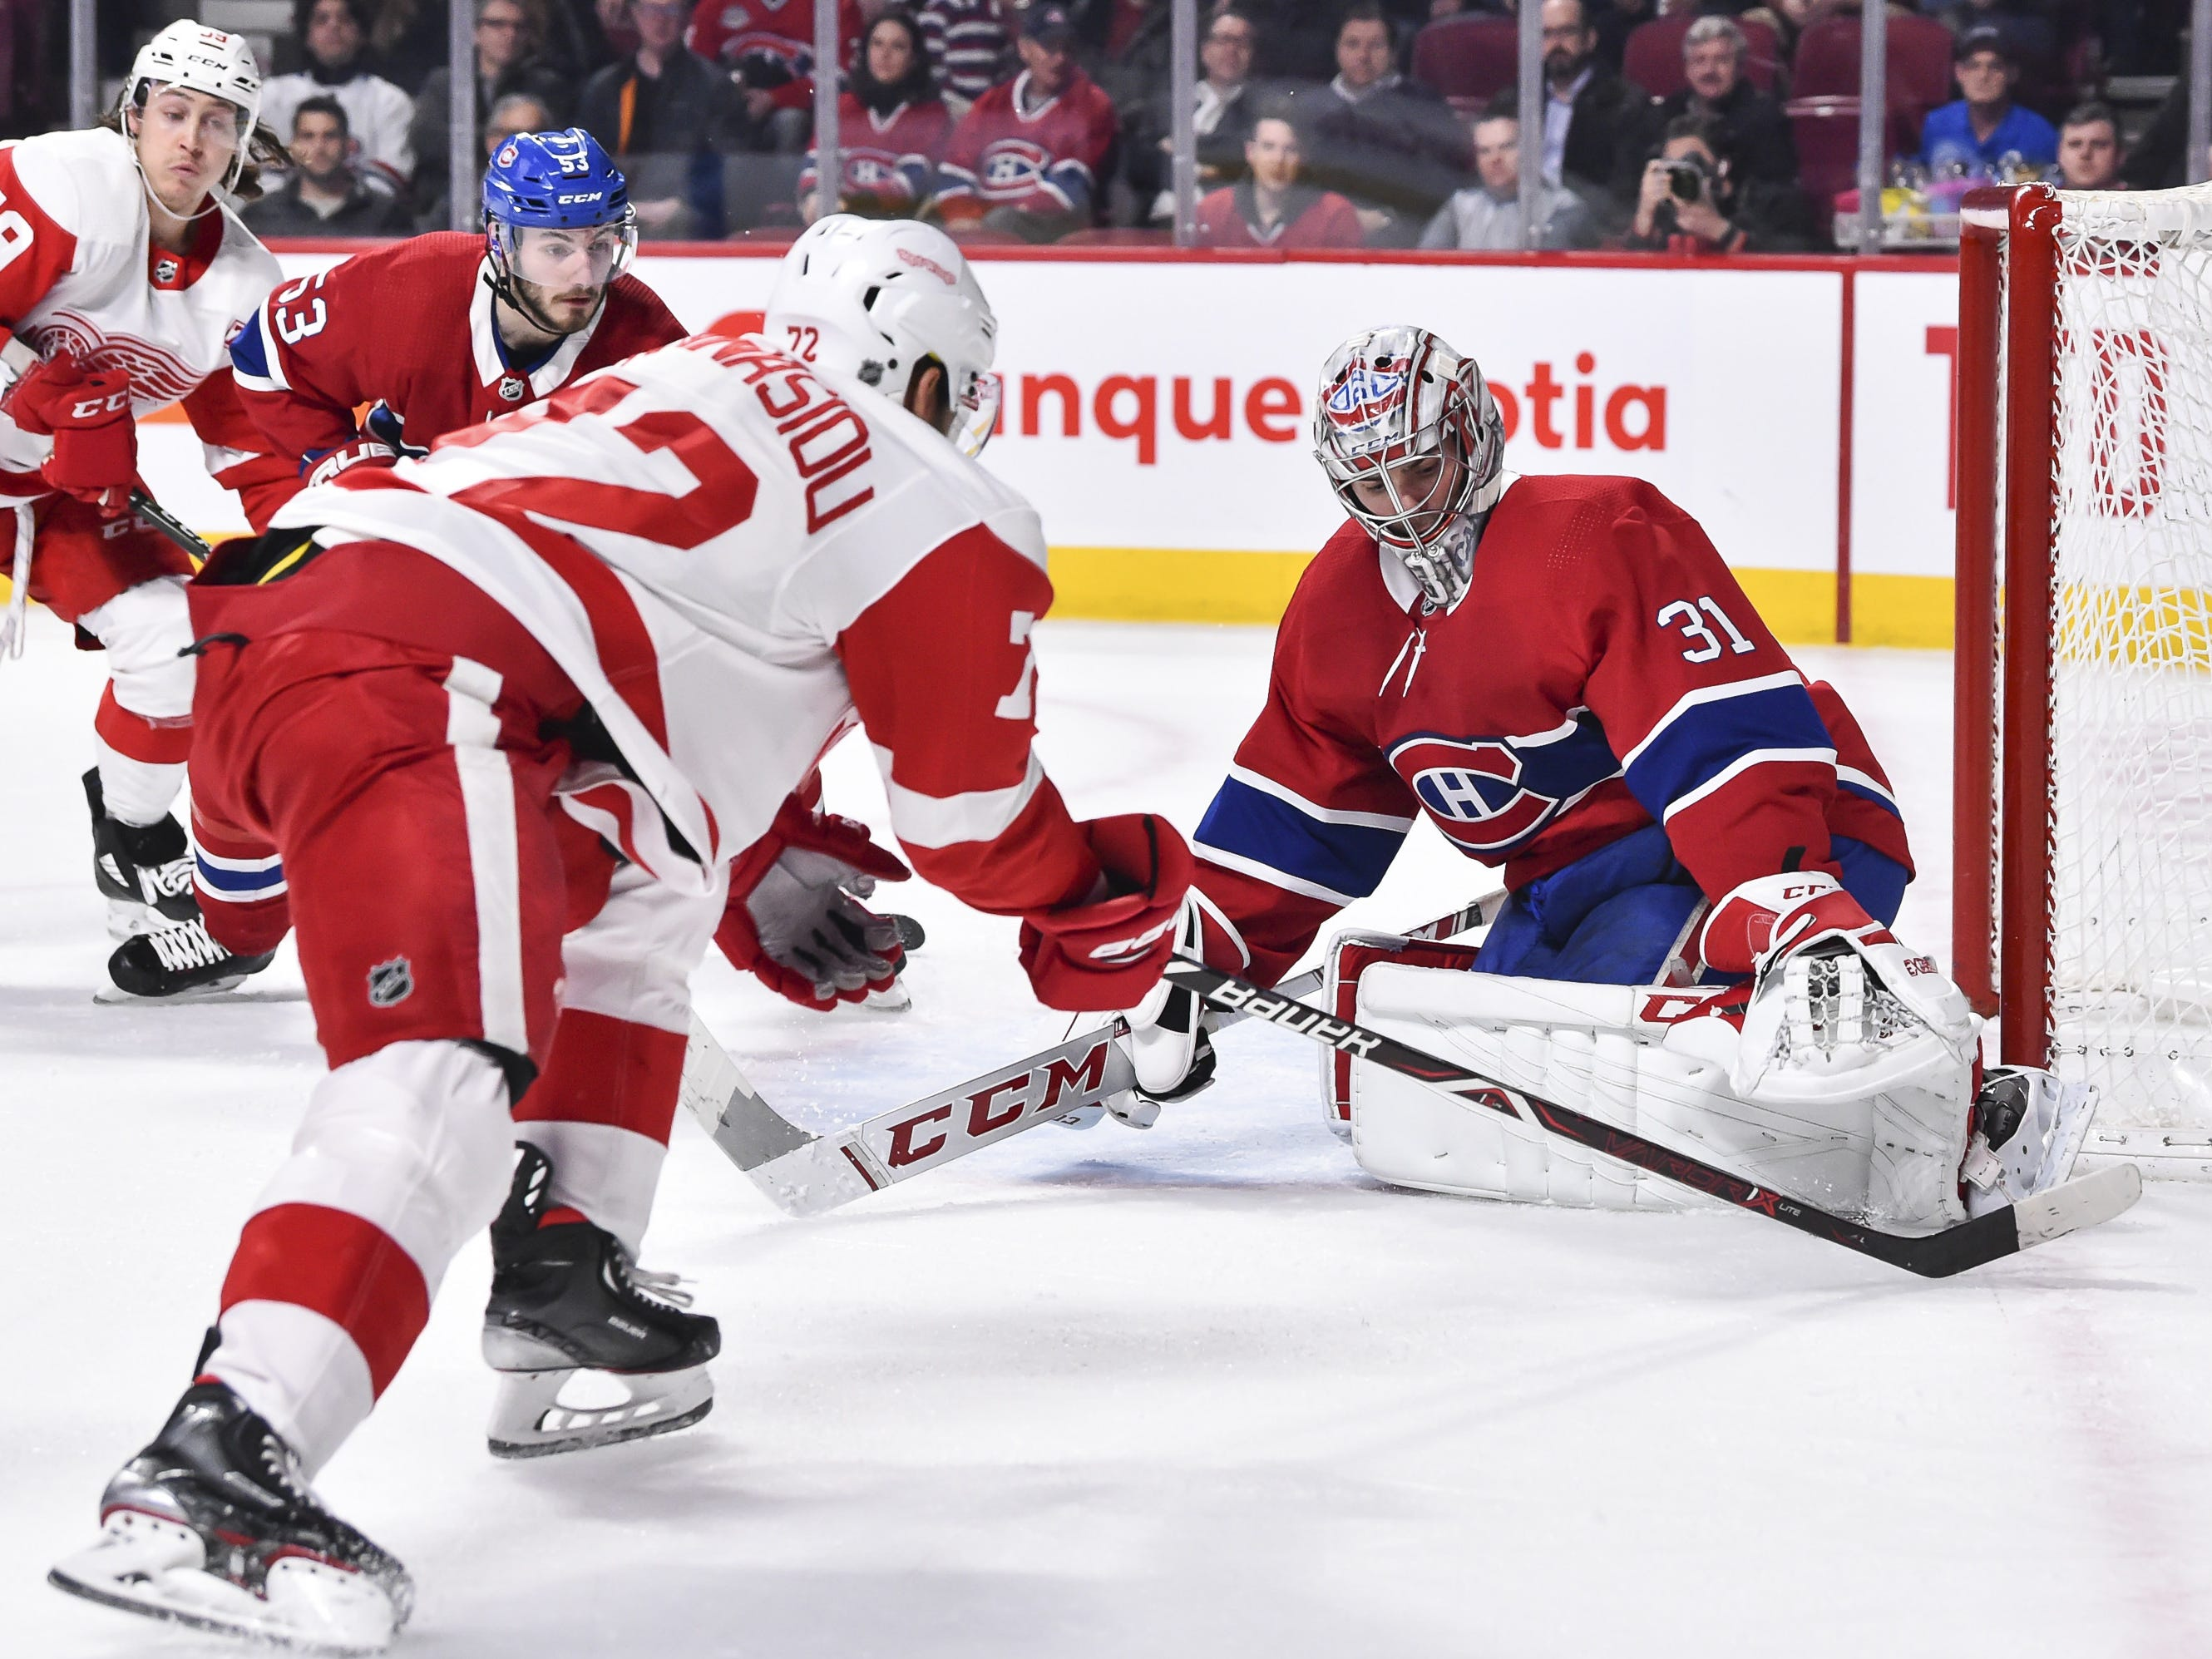 Goaltender Carey Price of the Montreal Canadiens makes a pad save on Andreas Athanasiou of the Detroit Red Wings at the Bell Centre on March 12, 2019 in Montreal.